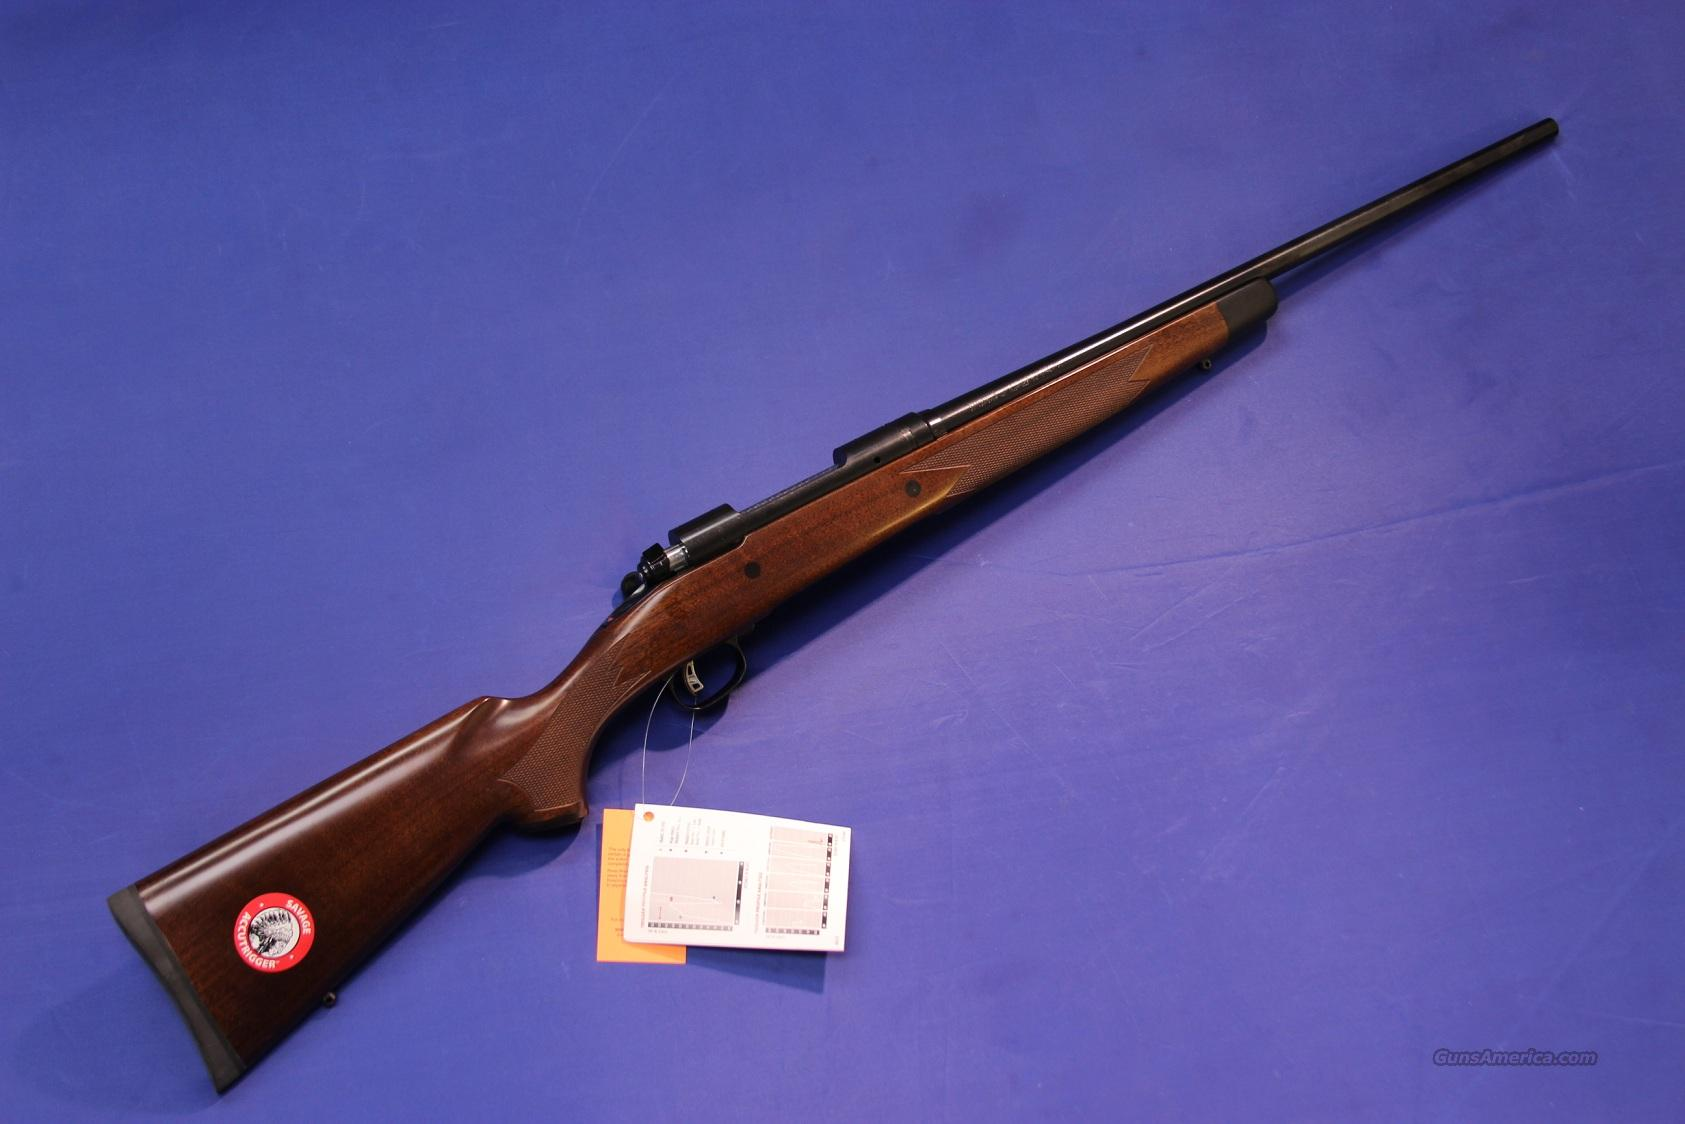 SAVAGE 14 AMERICAN CLASSIC .308 WIN LH  - NEW!  Guns > Rifles > Savage Rifles > Accutrigger Models > Sporting